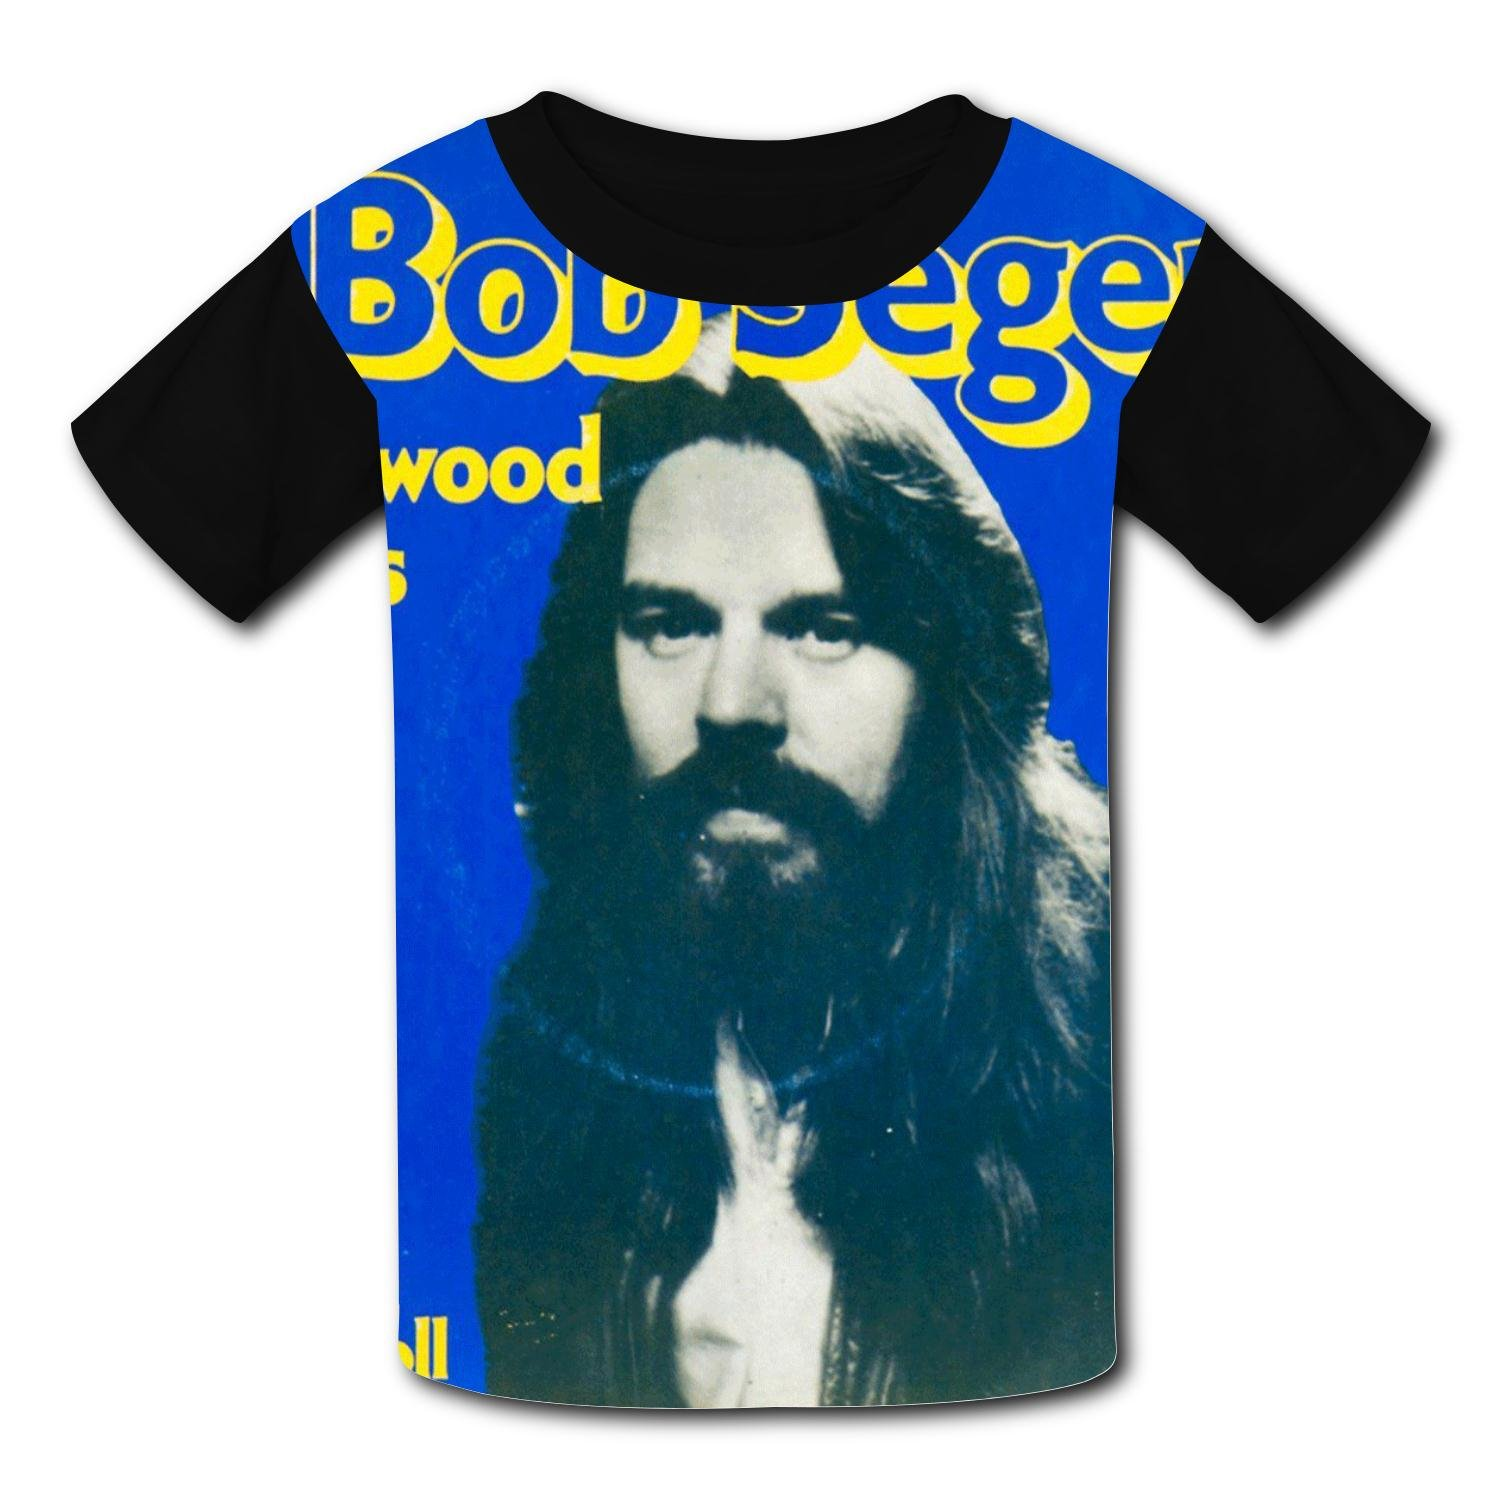 Bm Hgkjh21 3d Bseger Moves Design Sleeve T Shirt Fashion Styles Tee